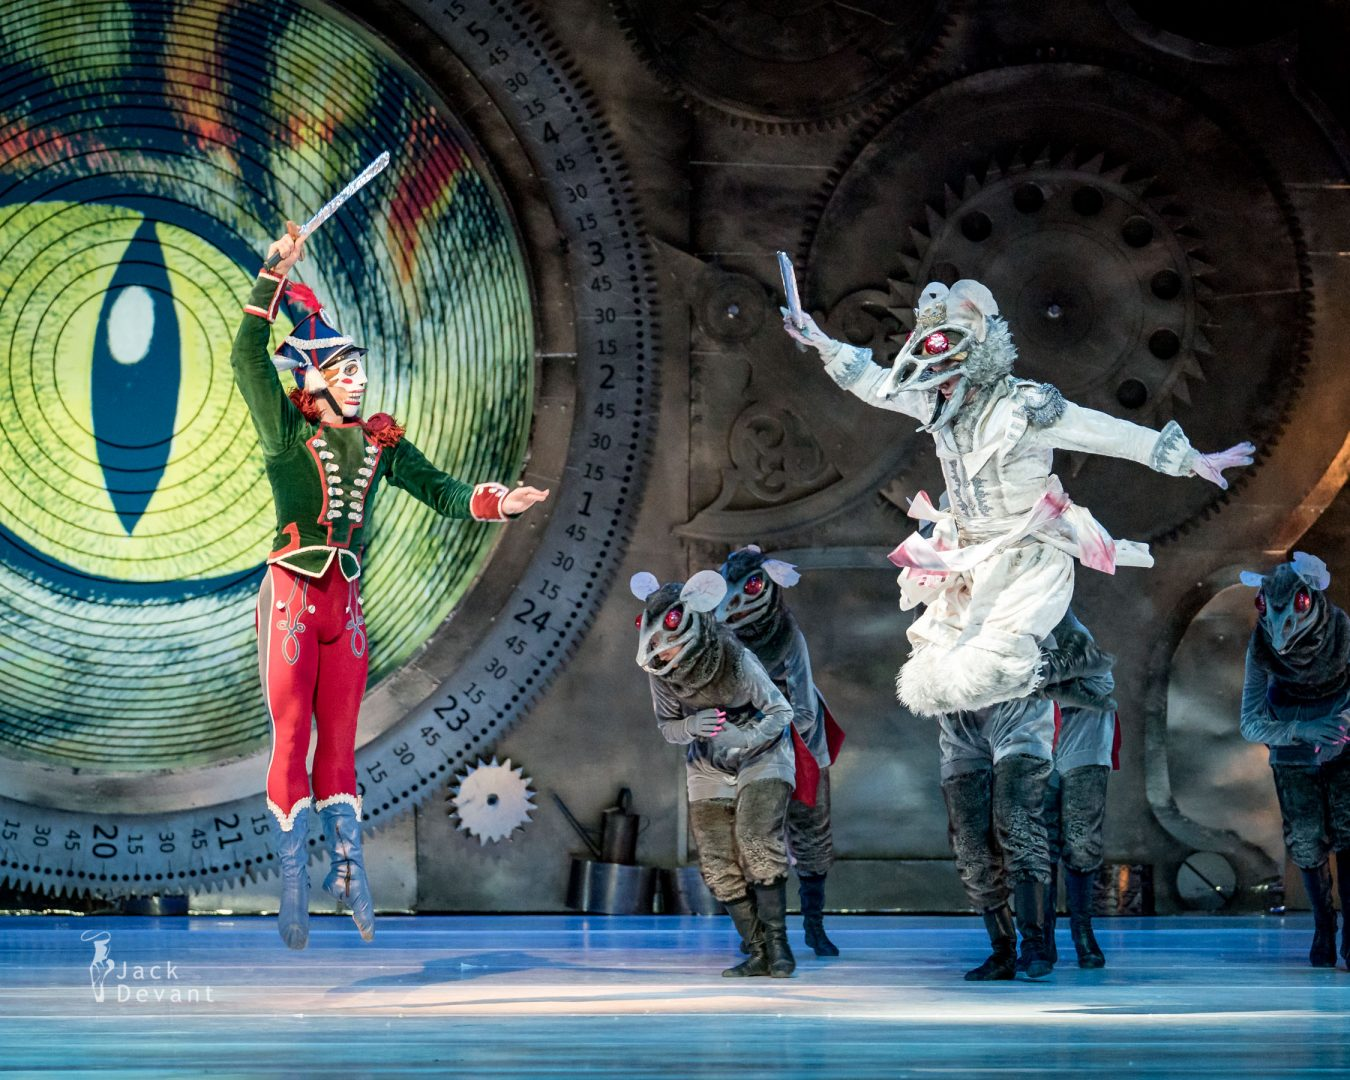 Pavel Koncewoj as the Nutcracker Kurusz Wojeński as the Mouse King